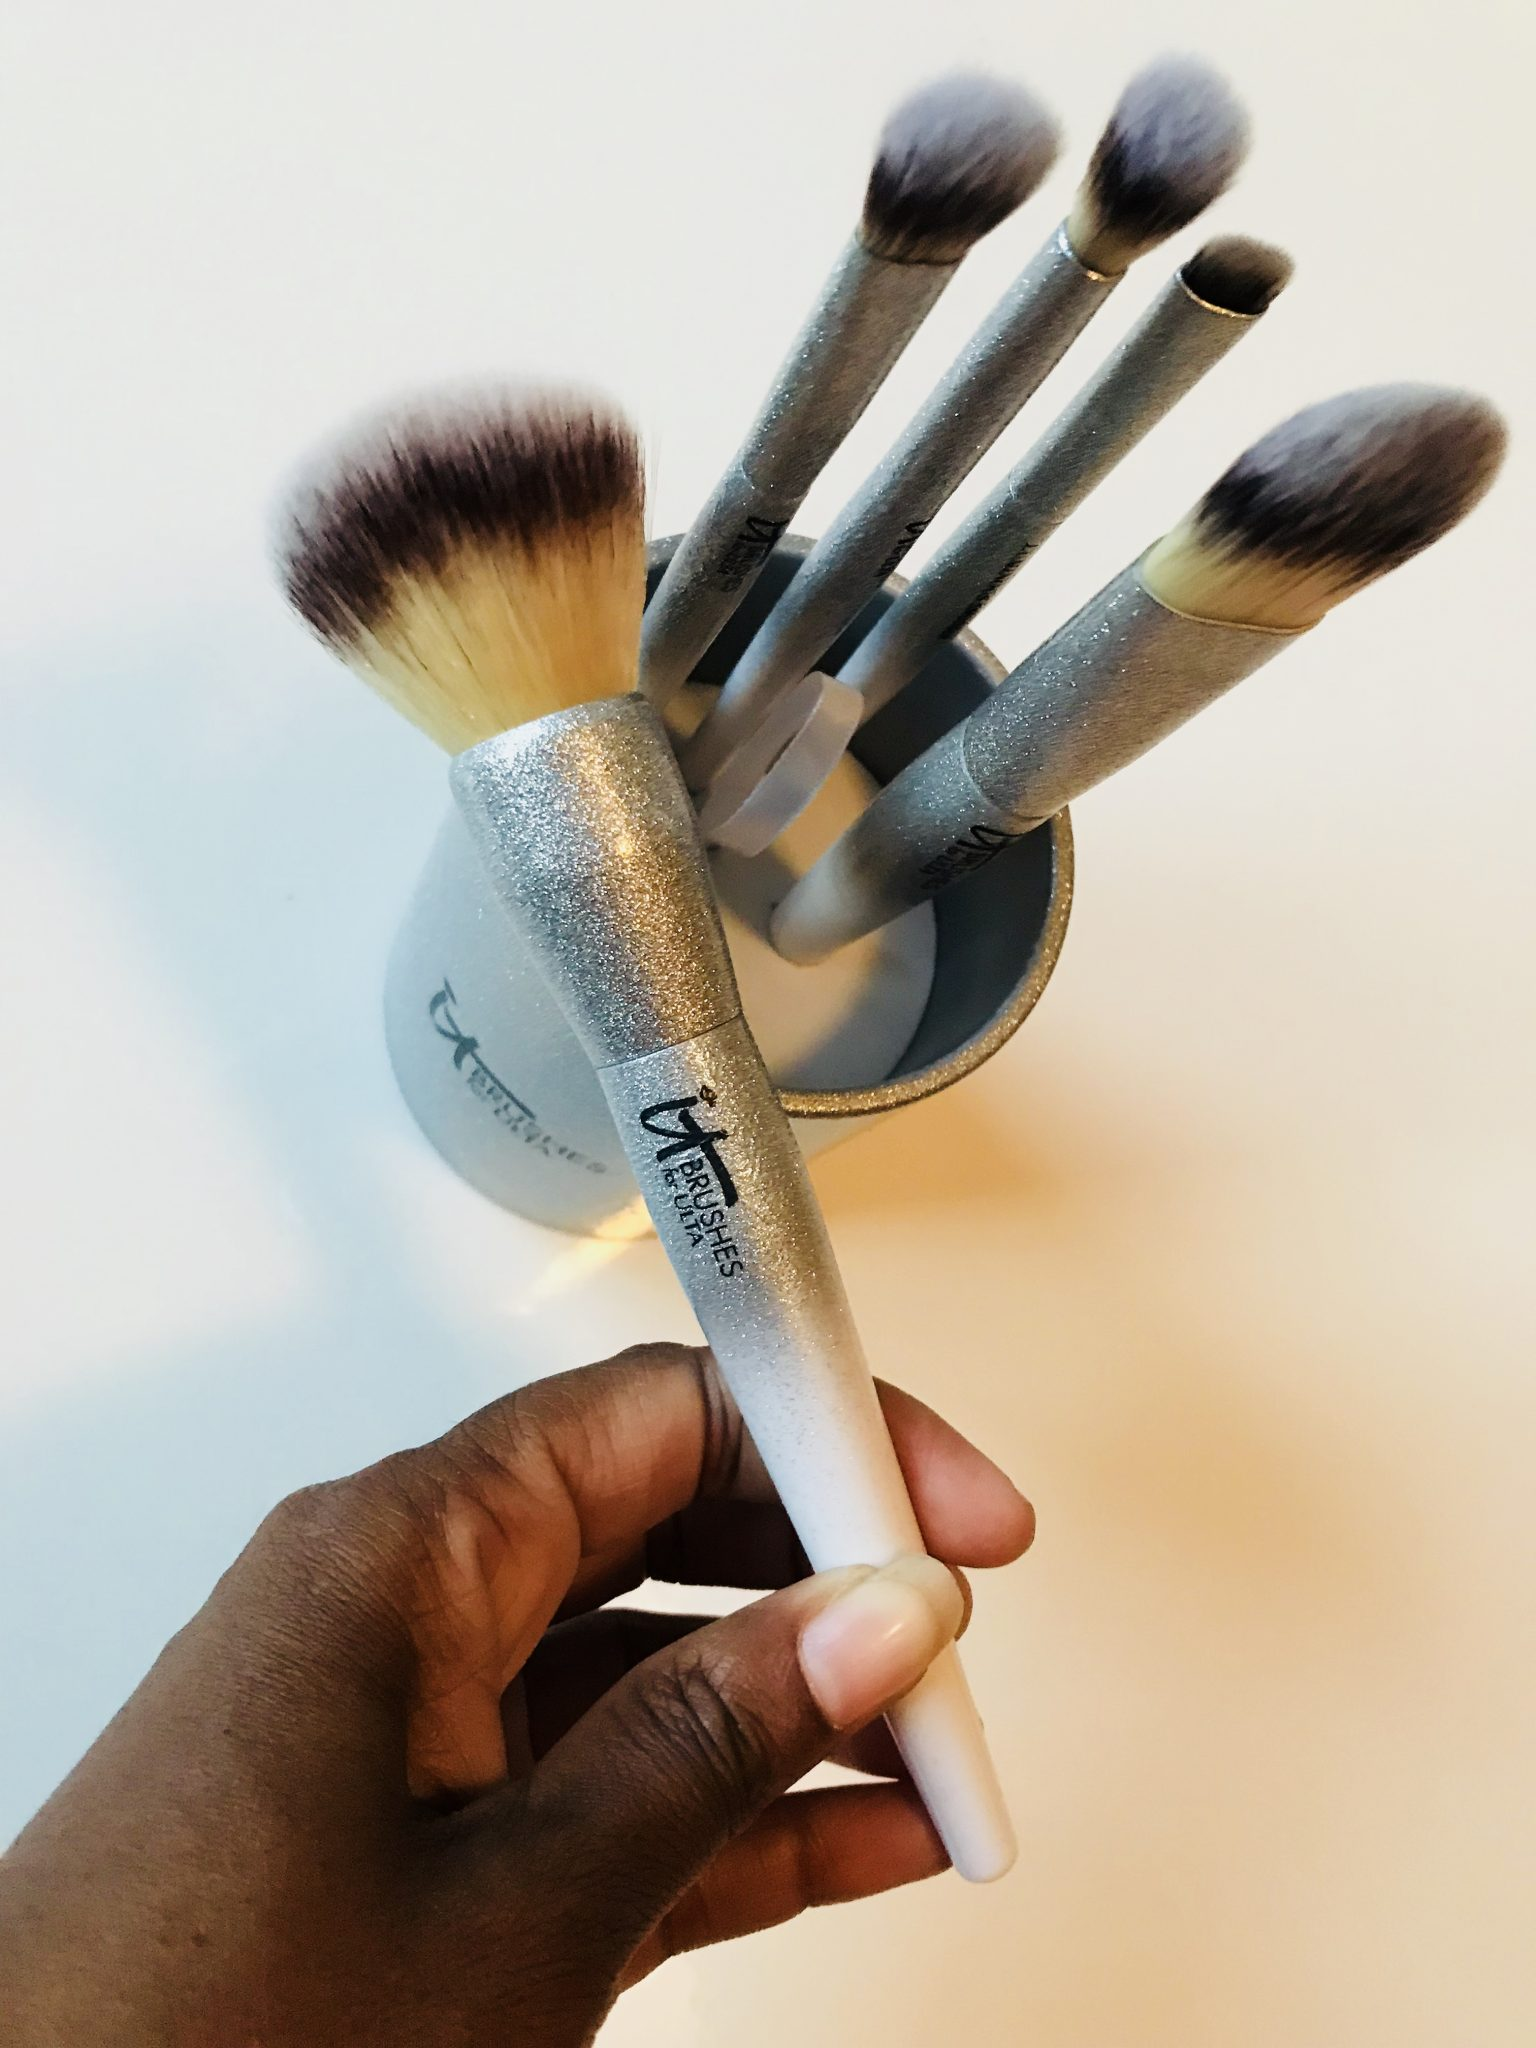 Gift Guide For Her: It Cosmetics Makeup Brushes